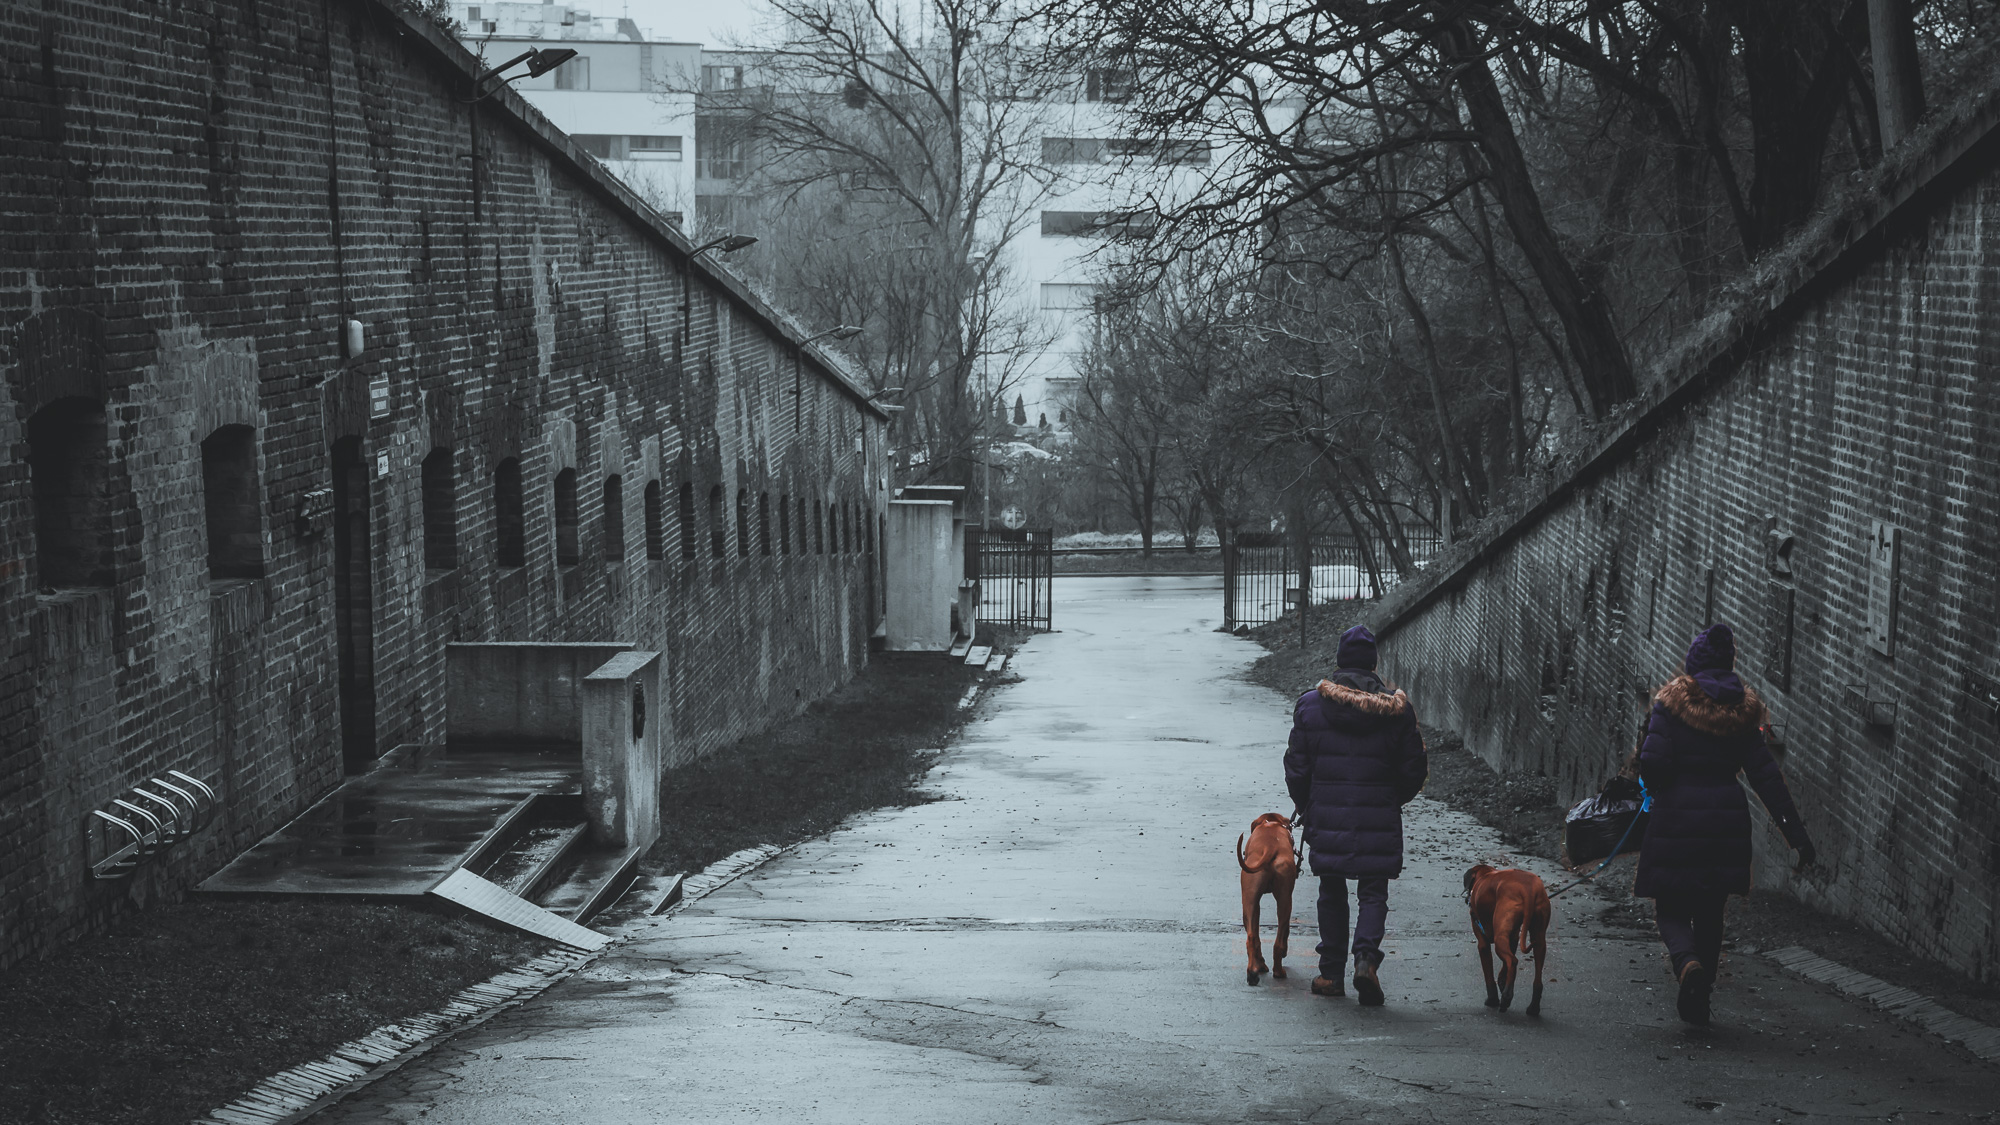 Dog-walkers in Poznan